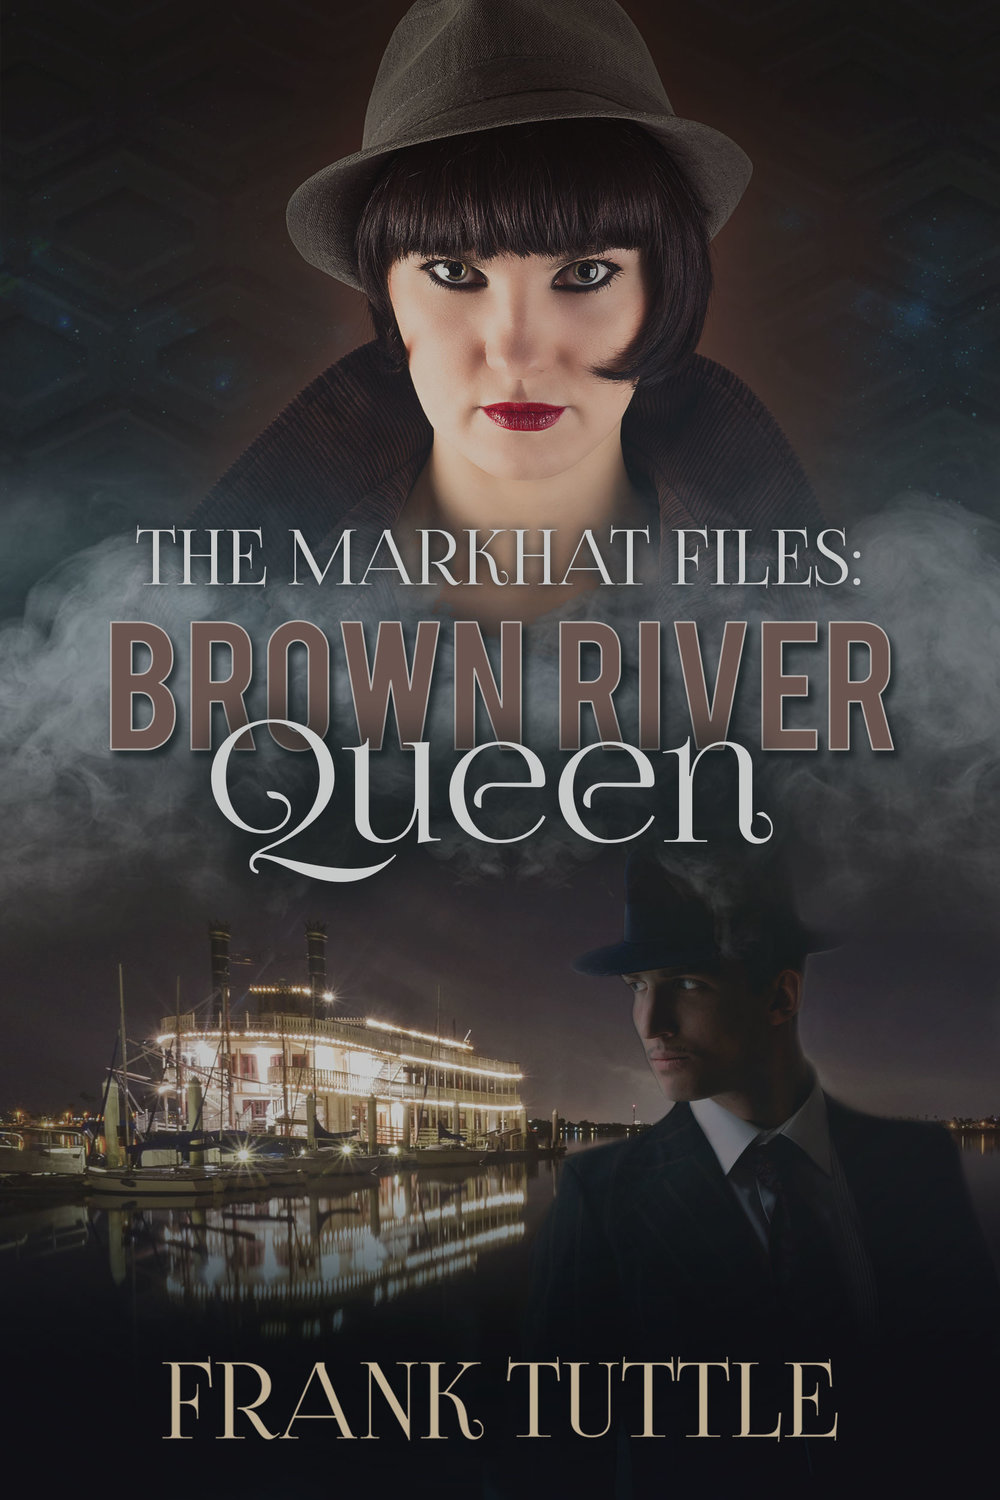 [FT-2017-002]-FT-Brown-River-Queen-E-Book-Cover_1667x2500.jpg